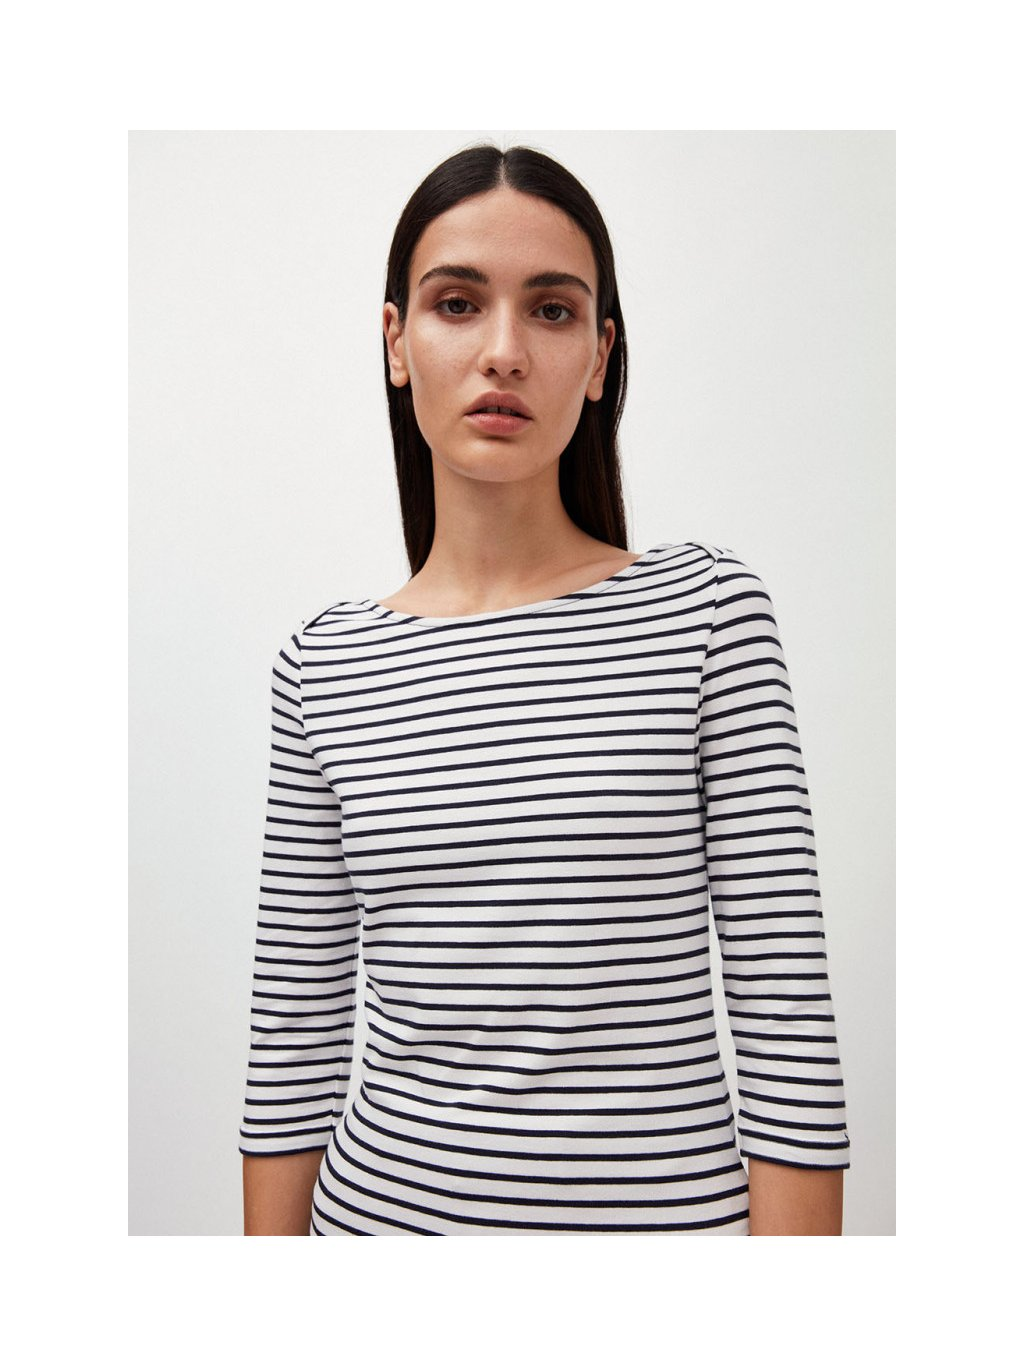 dalenaa stripes off white night sky